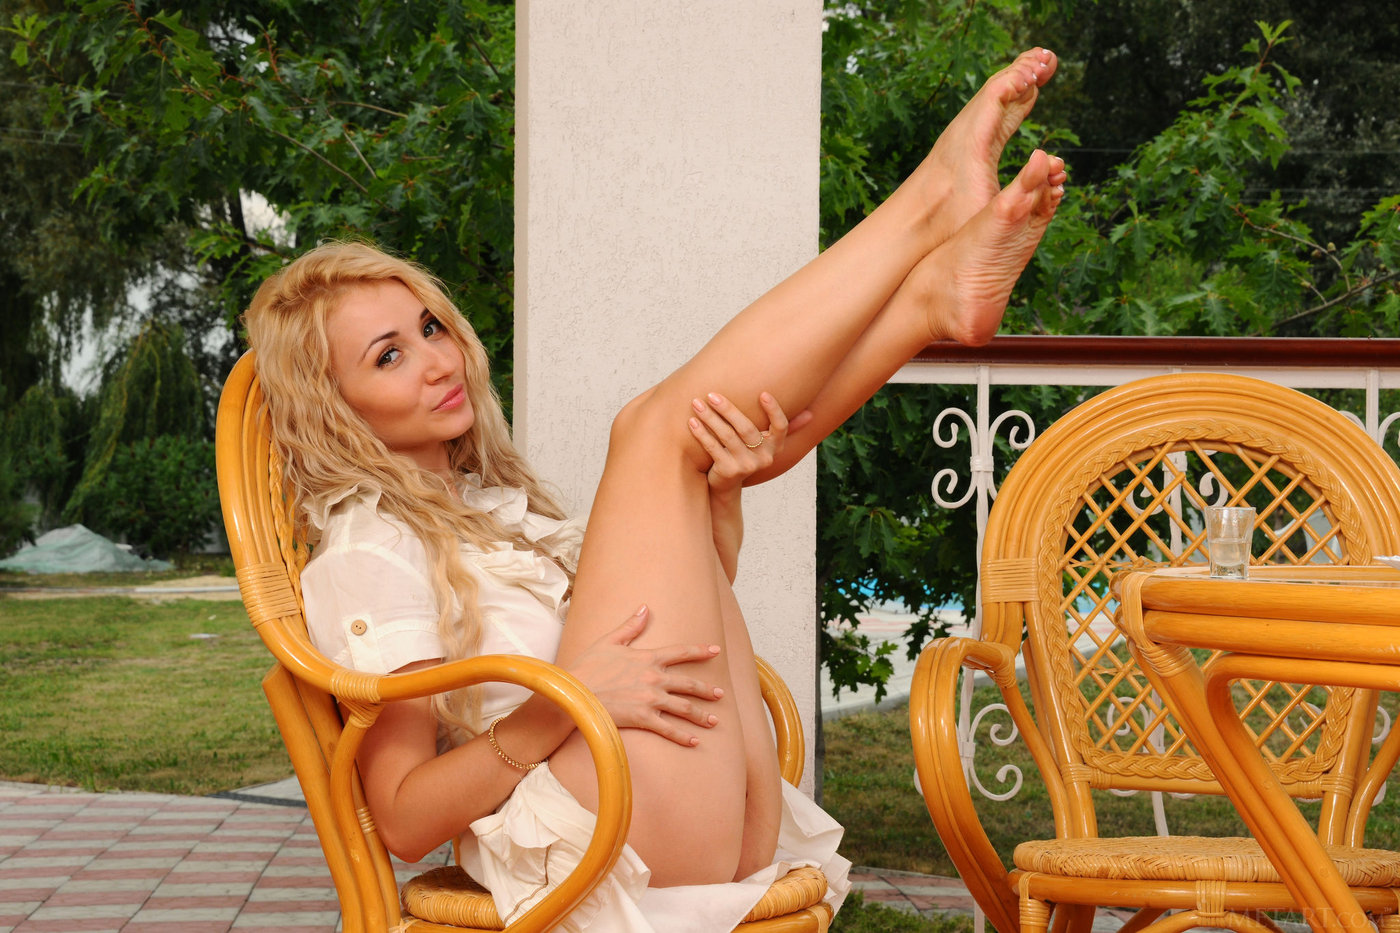 curly-haired and busty older blonde posing half-naked on a wicker